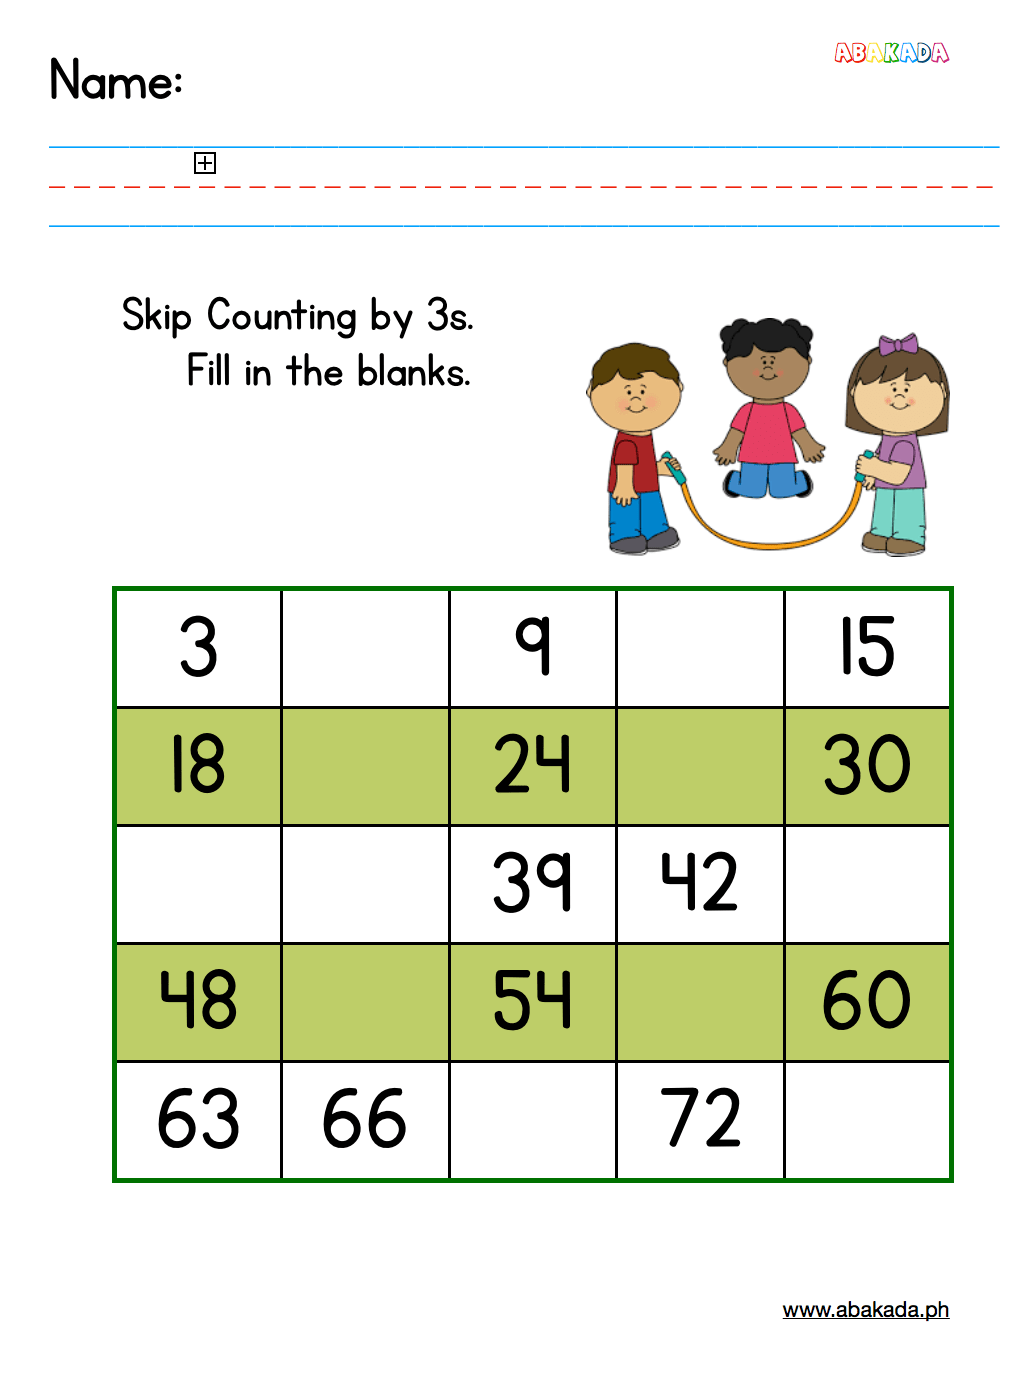 Free Skip Counting By 3s Worksheet